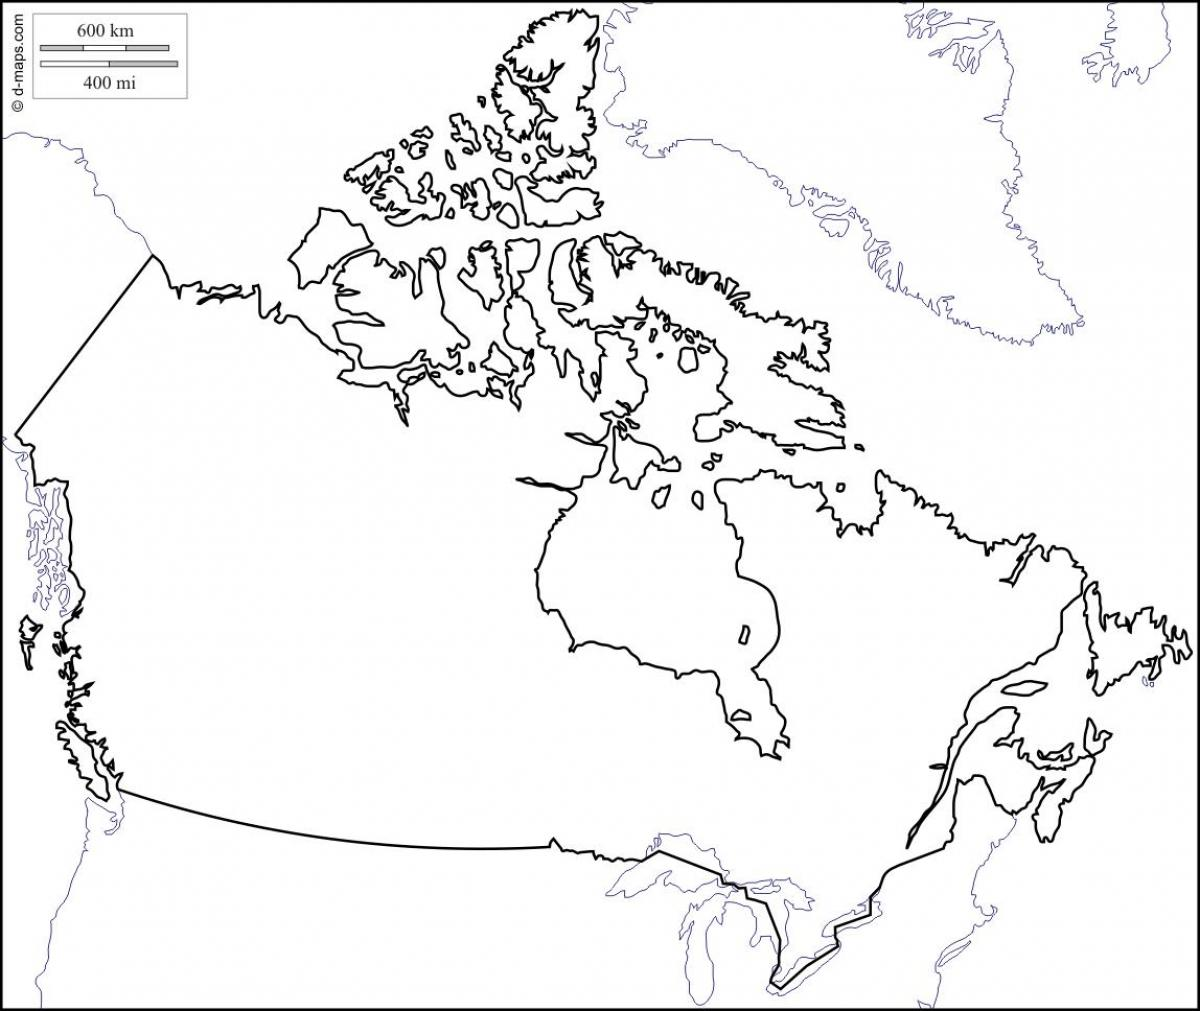 Picture of: Canada Map Outline Blank Outline Map Of Canada Northern America Americas